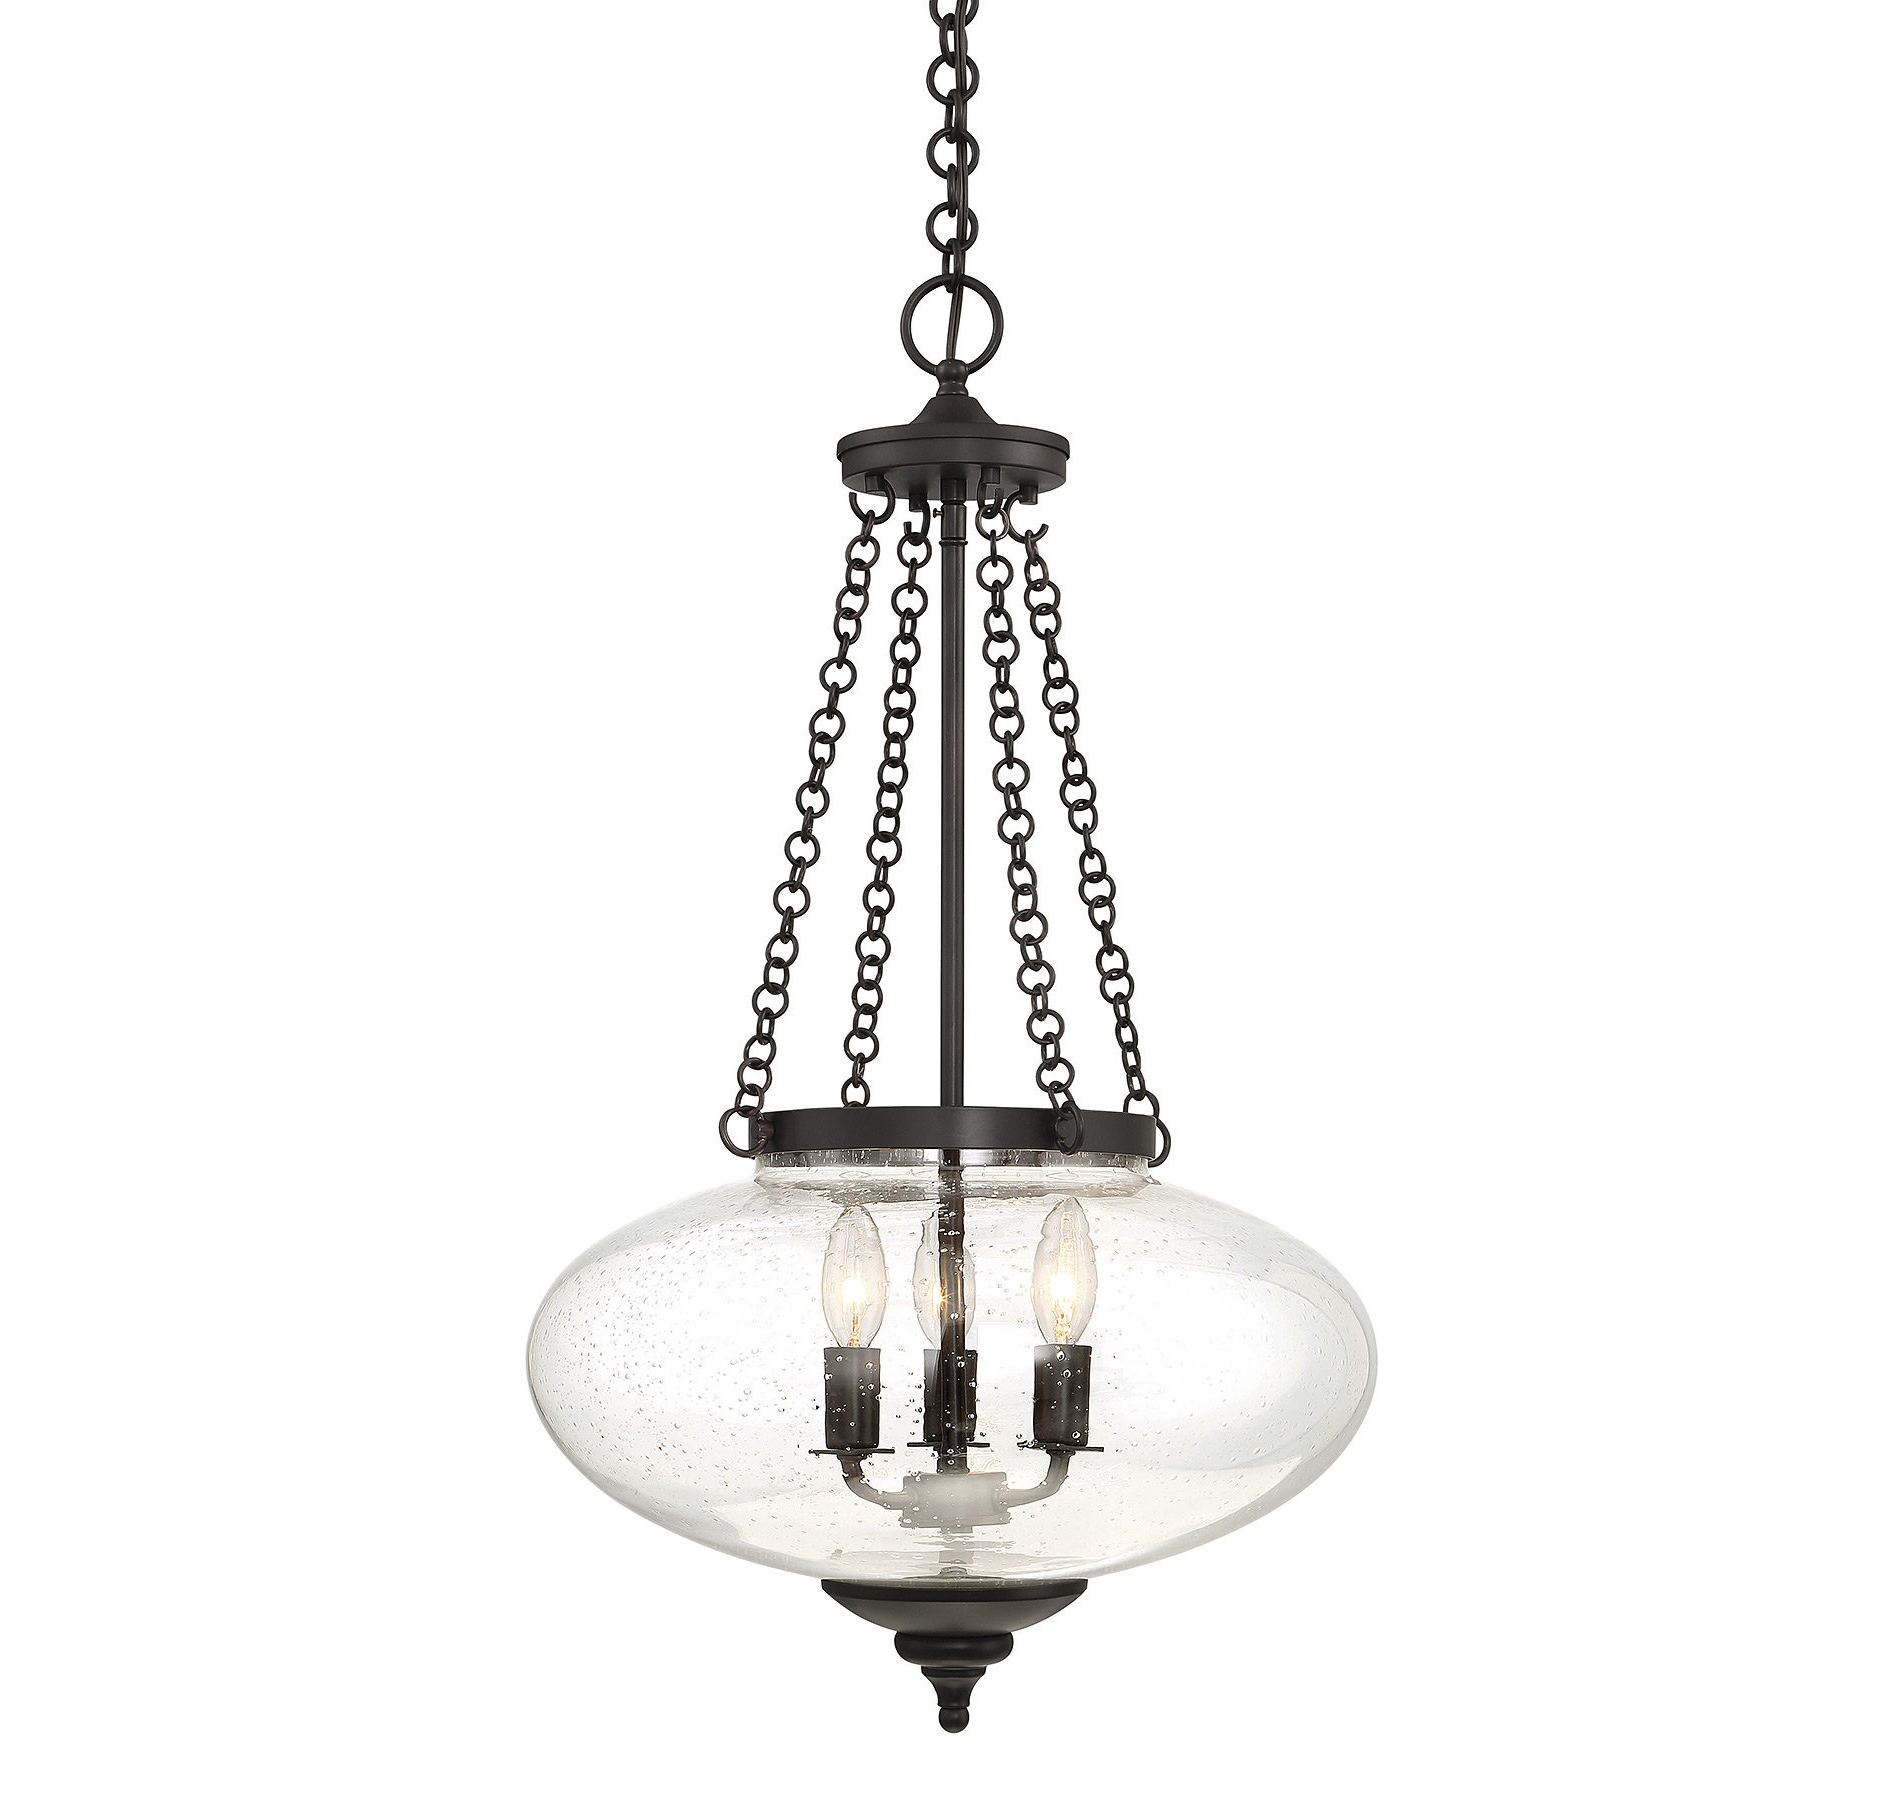 Best And Newest Spokane 1 Light Single Urn Pendants Within Fortunat 3 Light Urn Pendant (View 11 of 25)